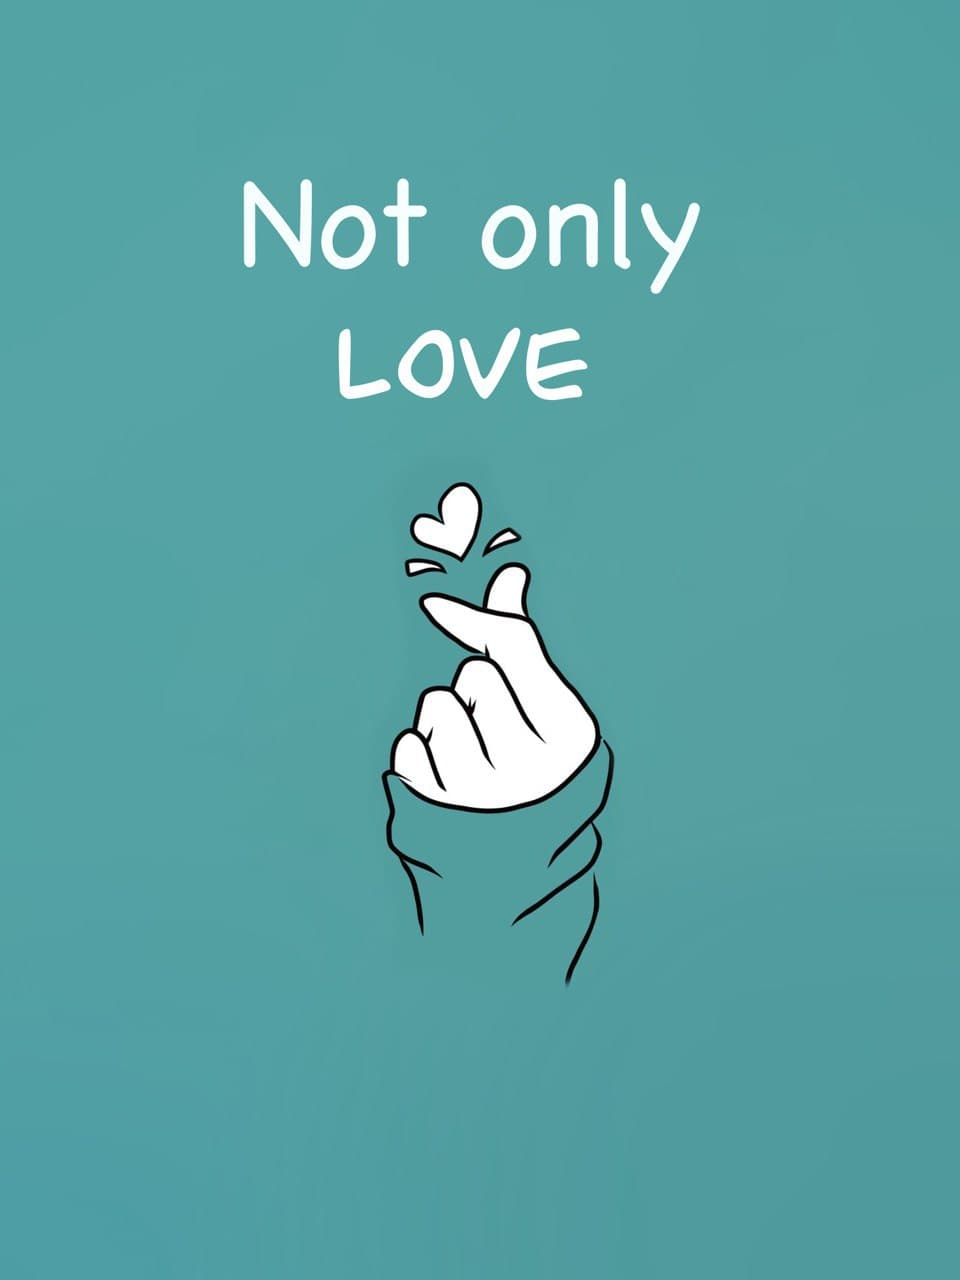 NOT ONLY LOVE